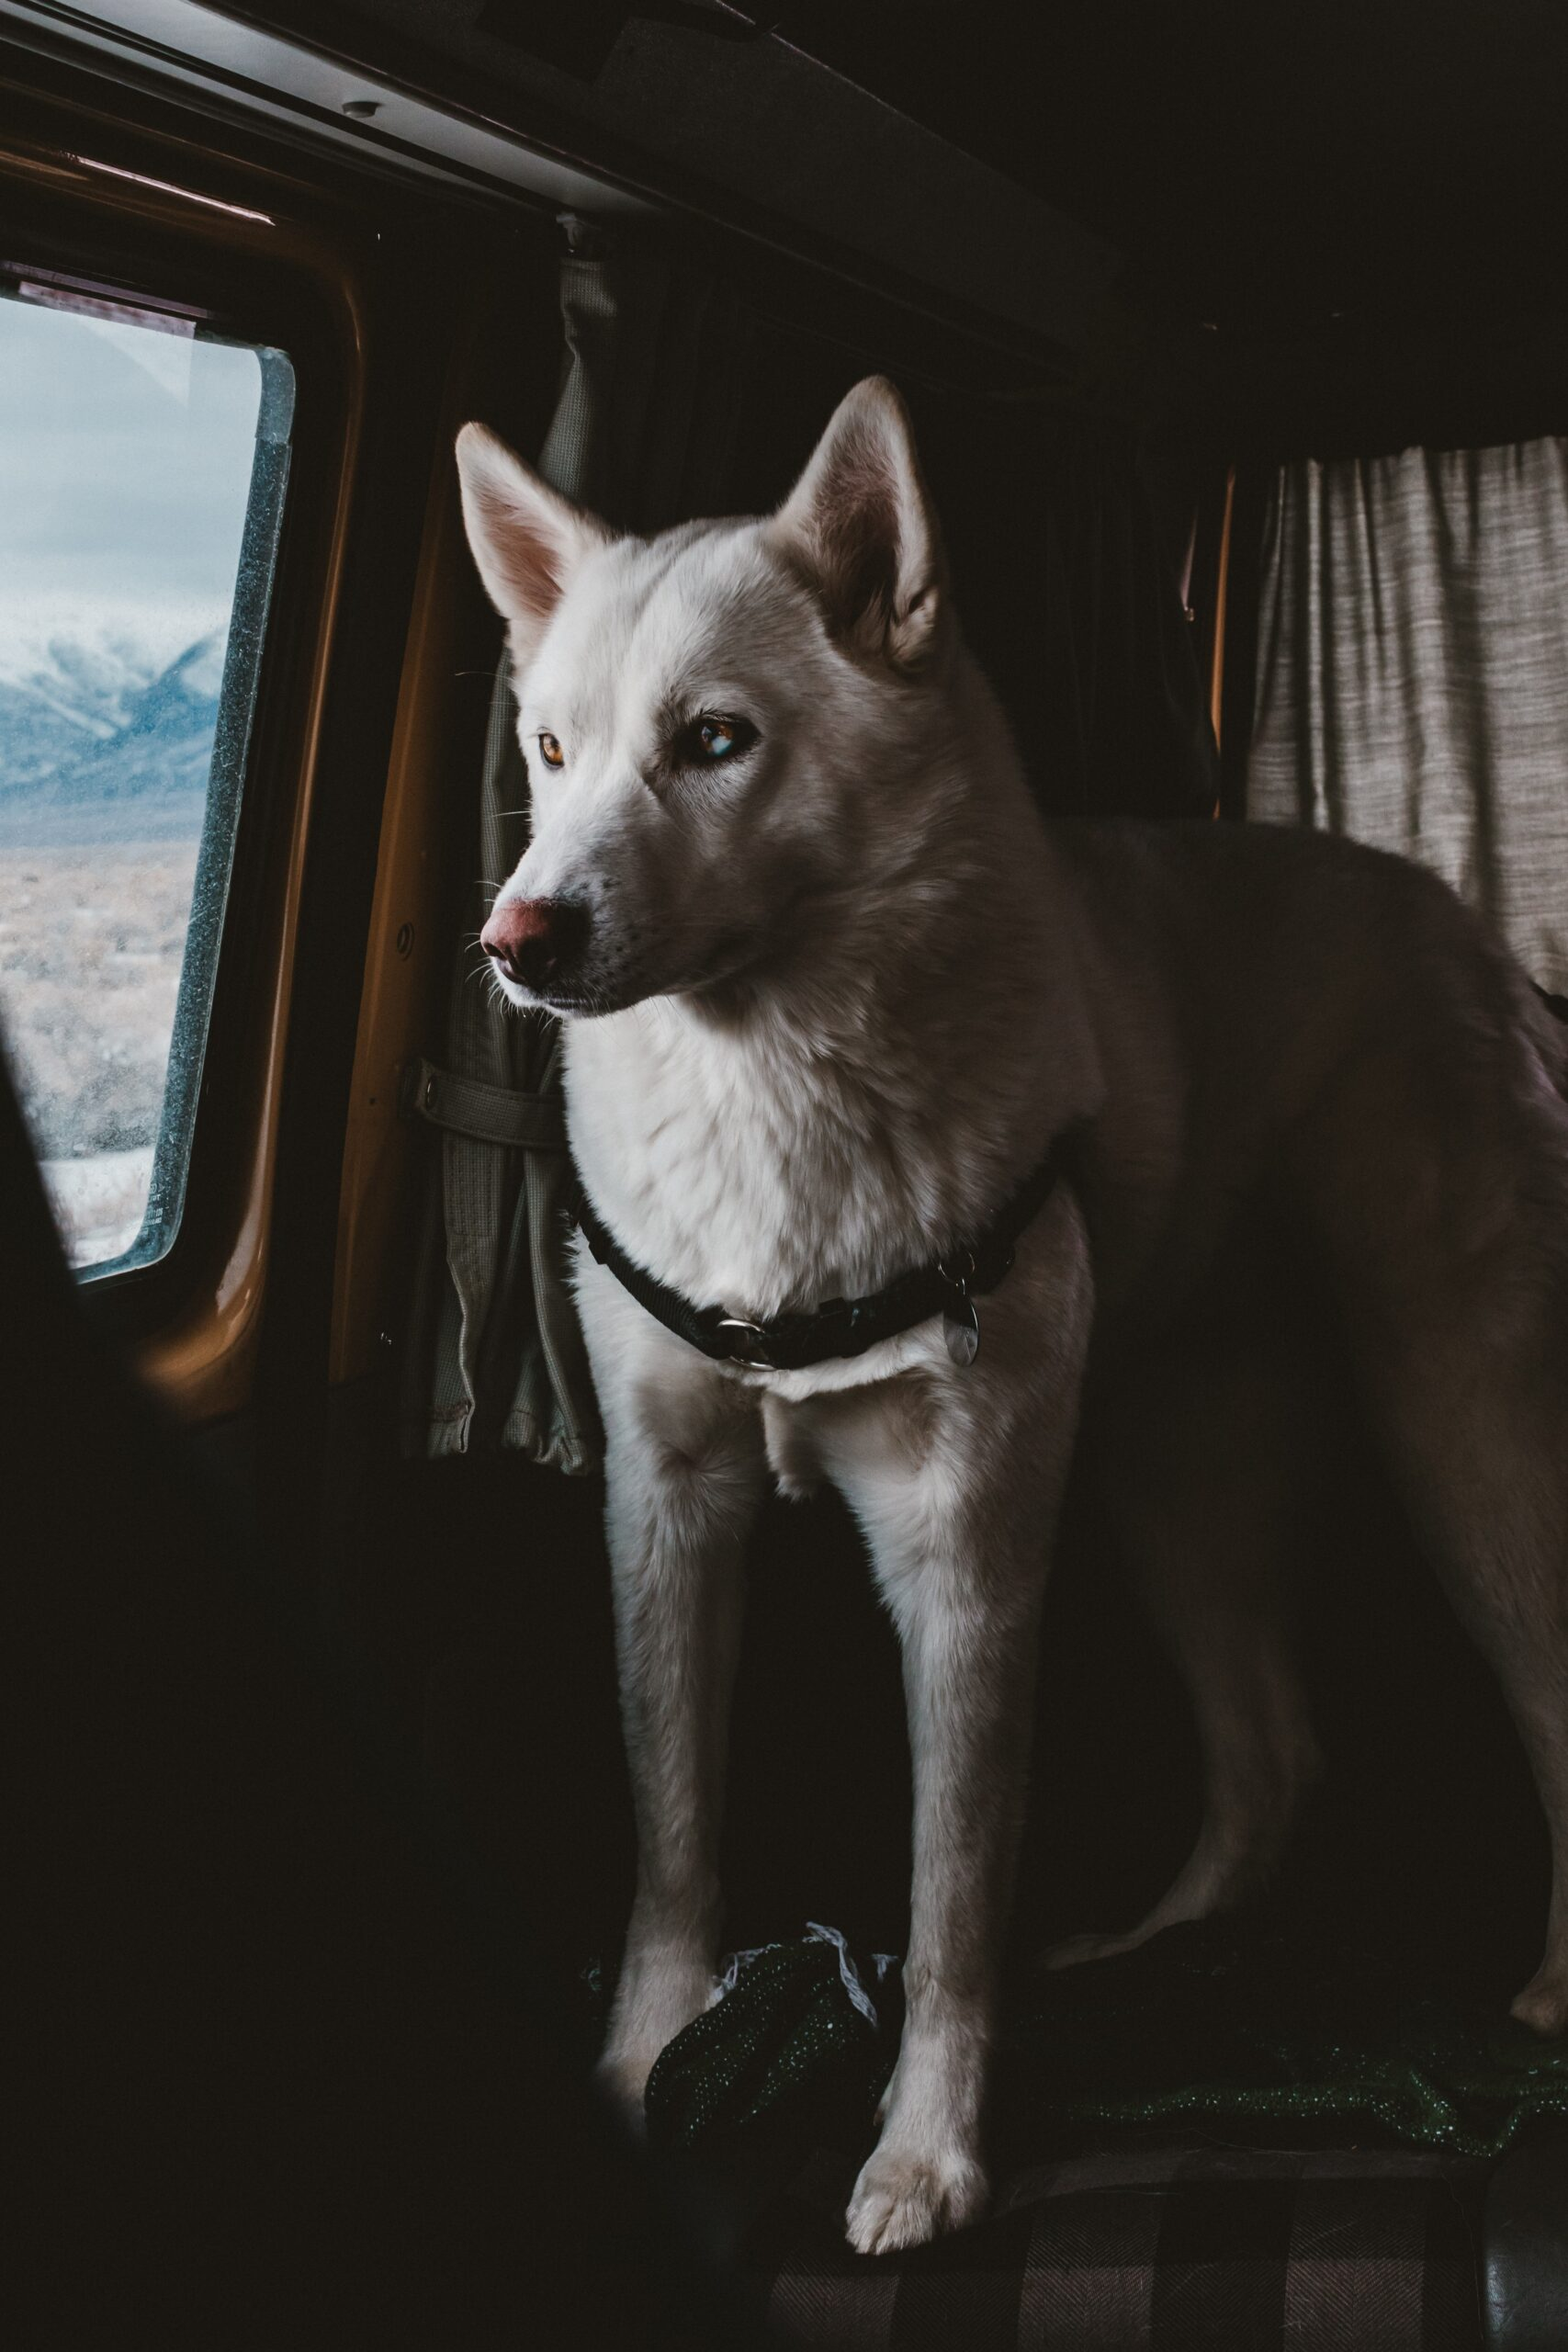 Dog Standing in Backseat of the Window of a Car